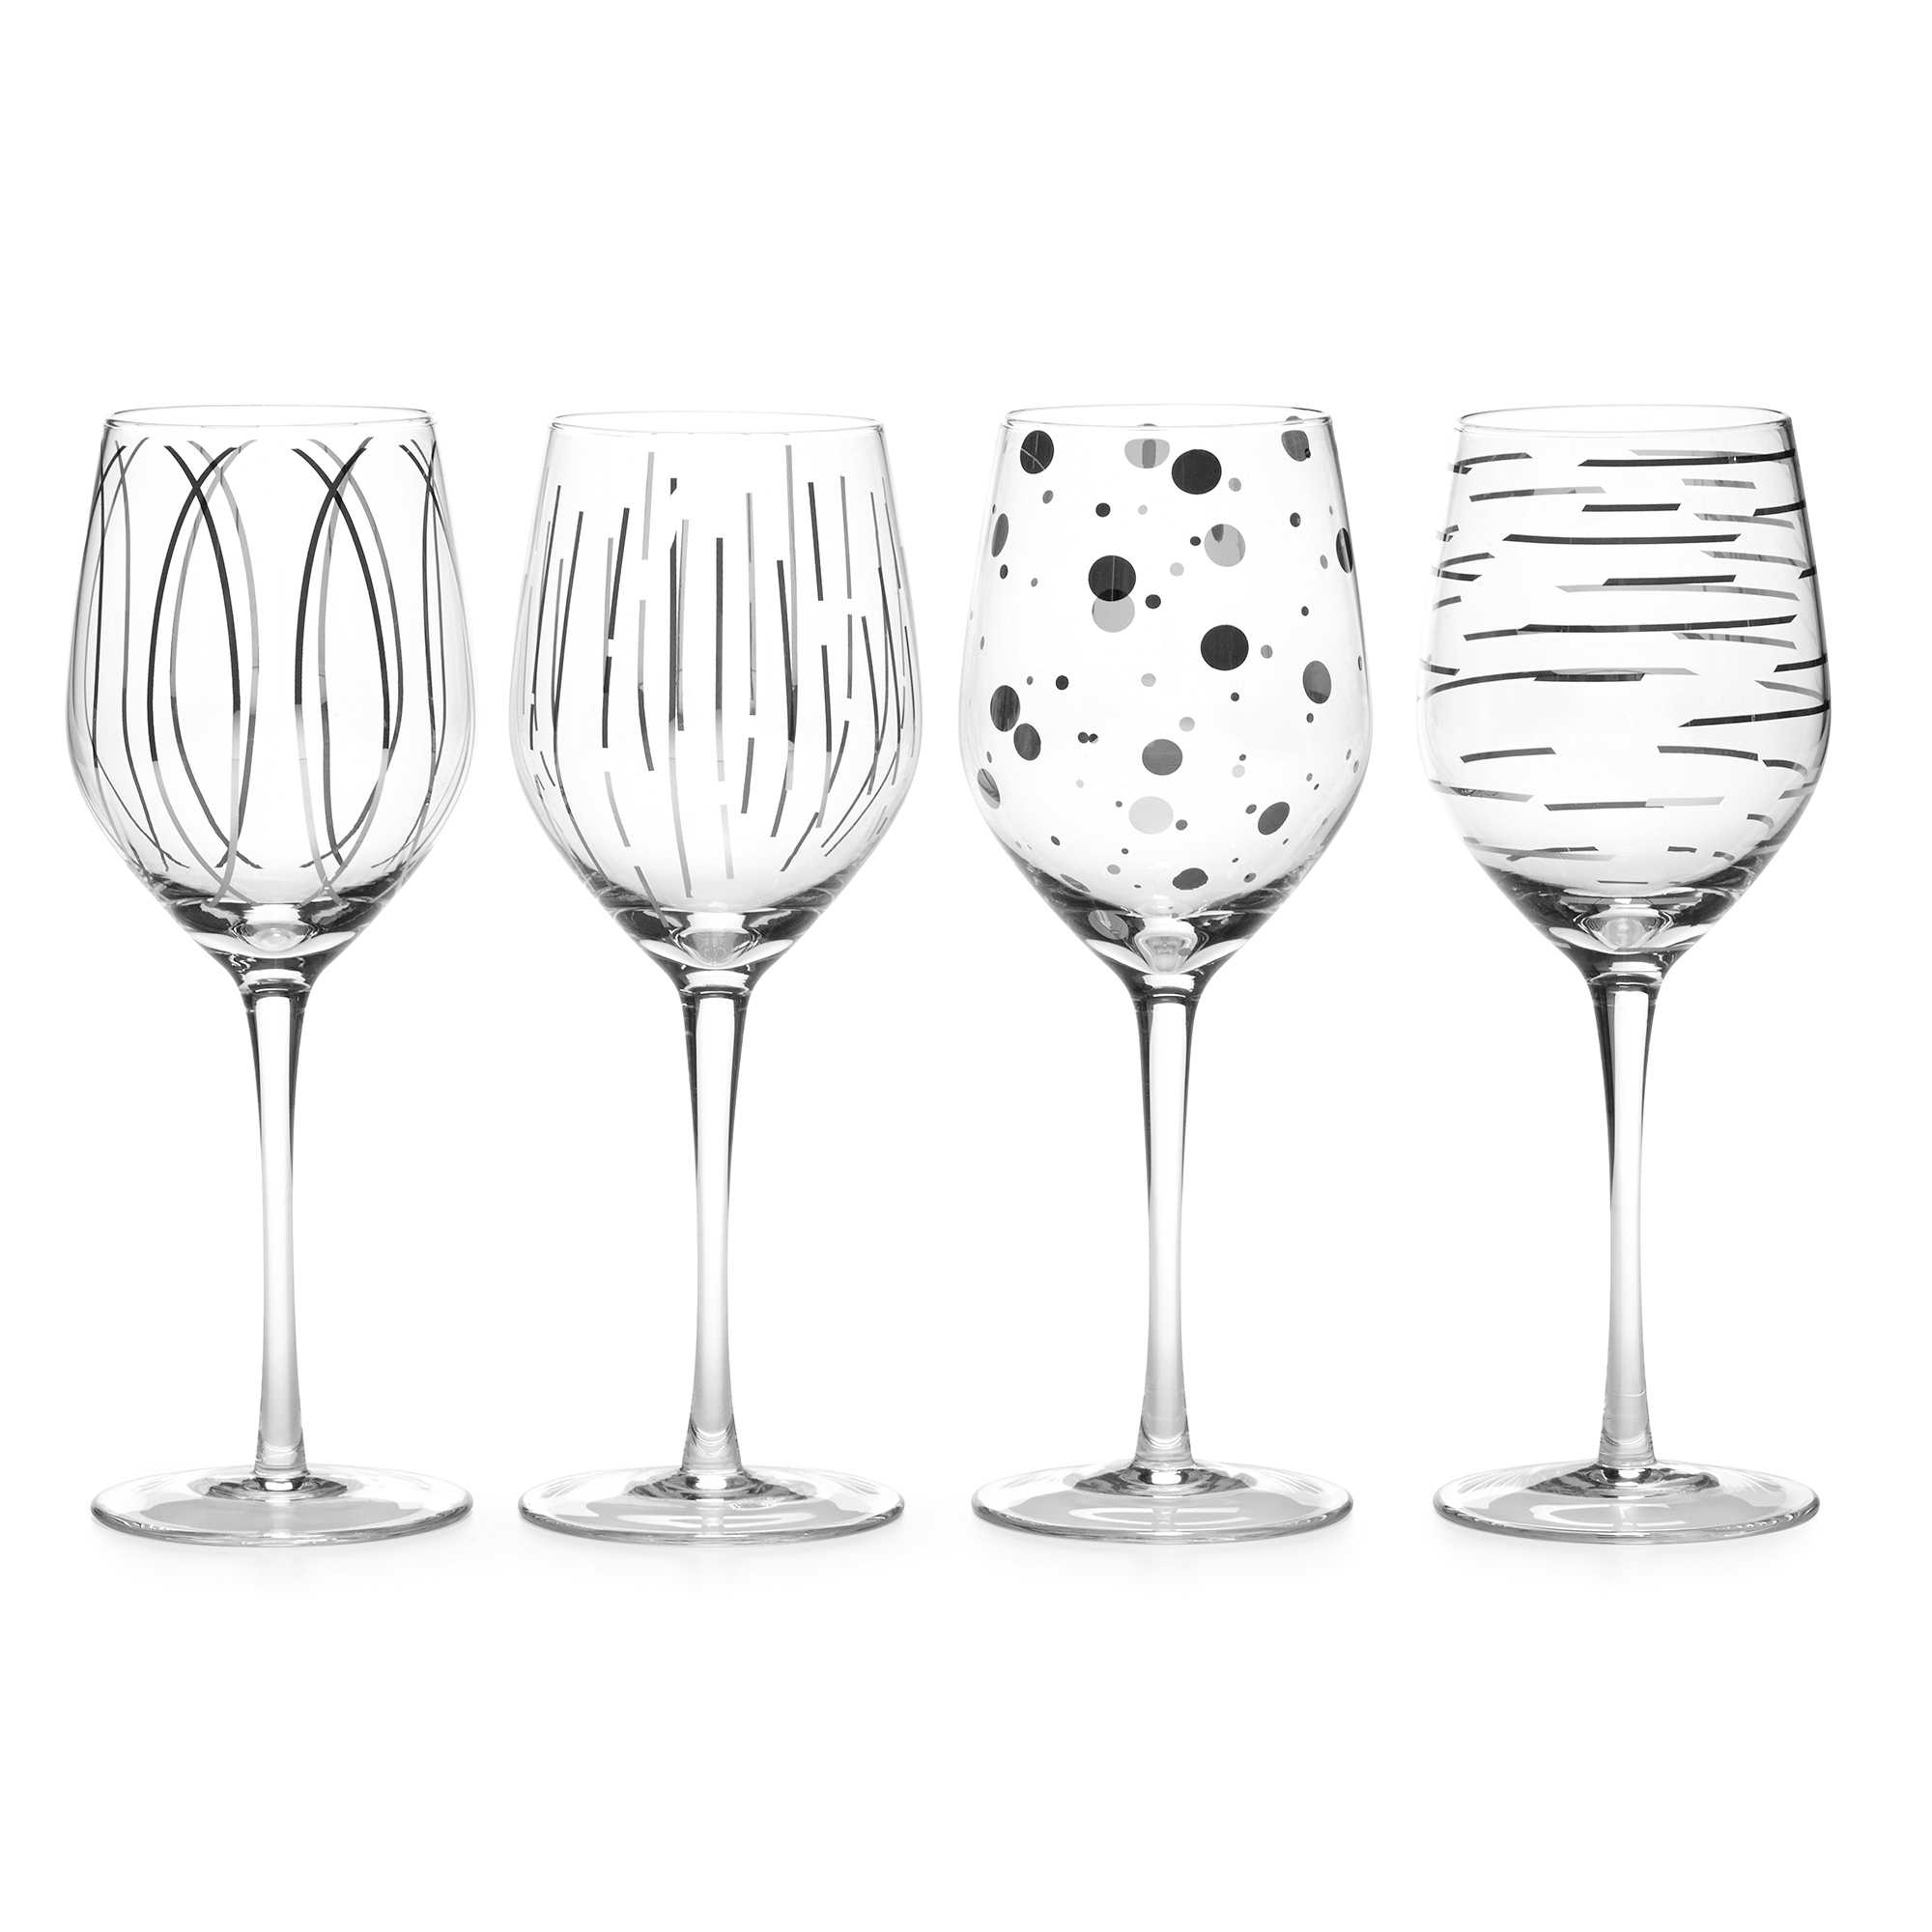 Beautiful Mikasa Wine Glasses for Stemware or Serveware: Fabulous Mikasa Wine Glasses Platinum Wine Mikasa Wine Glasses